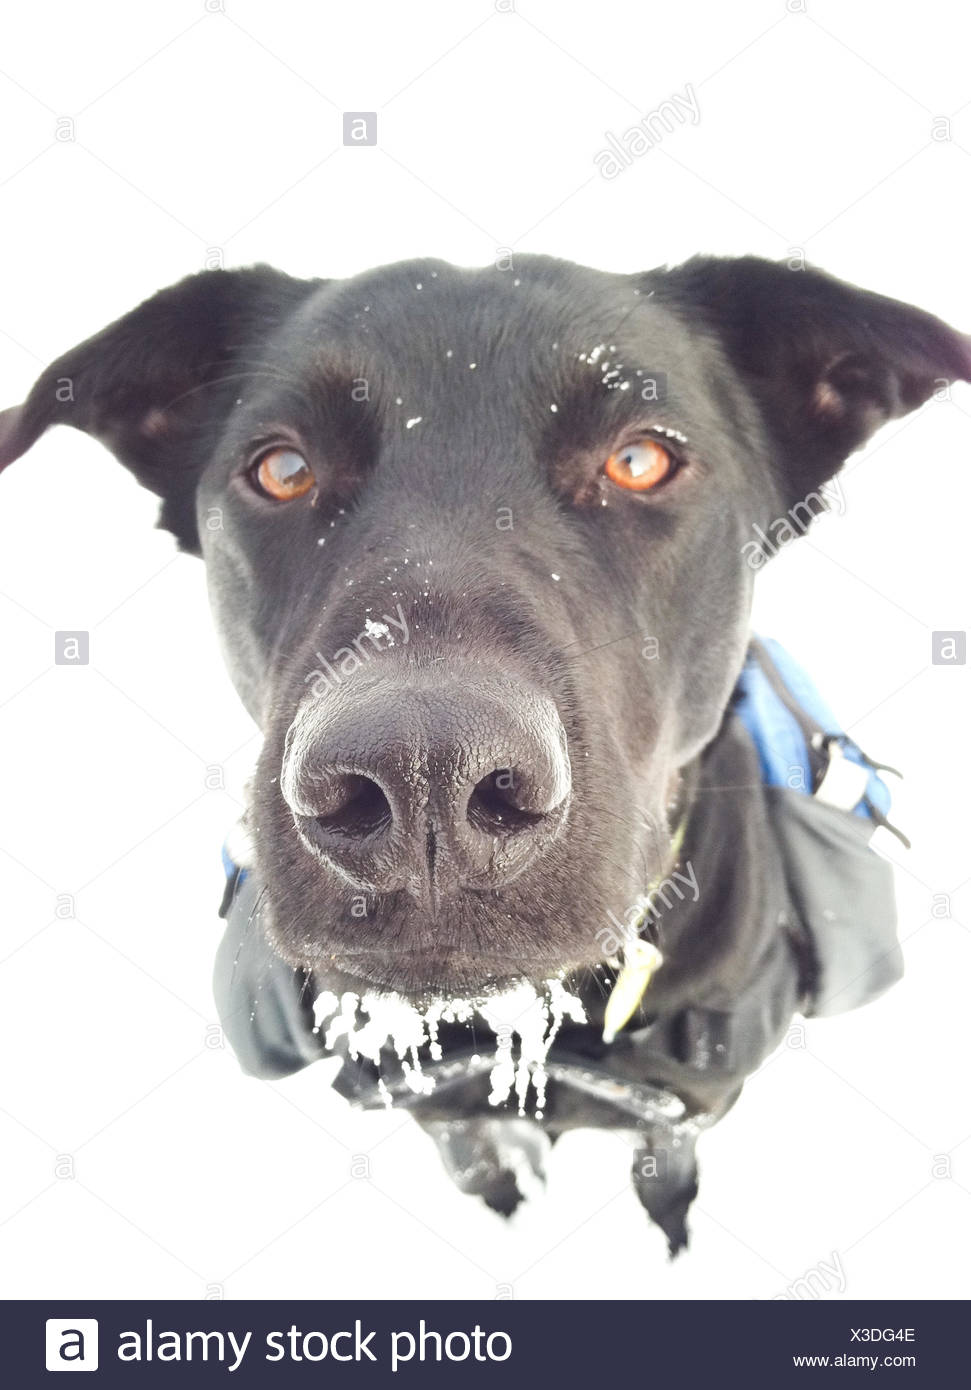 Portrait of a dog in the snow - Stock Image